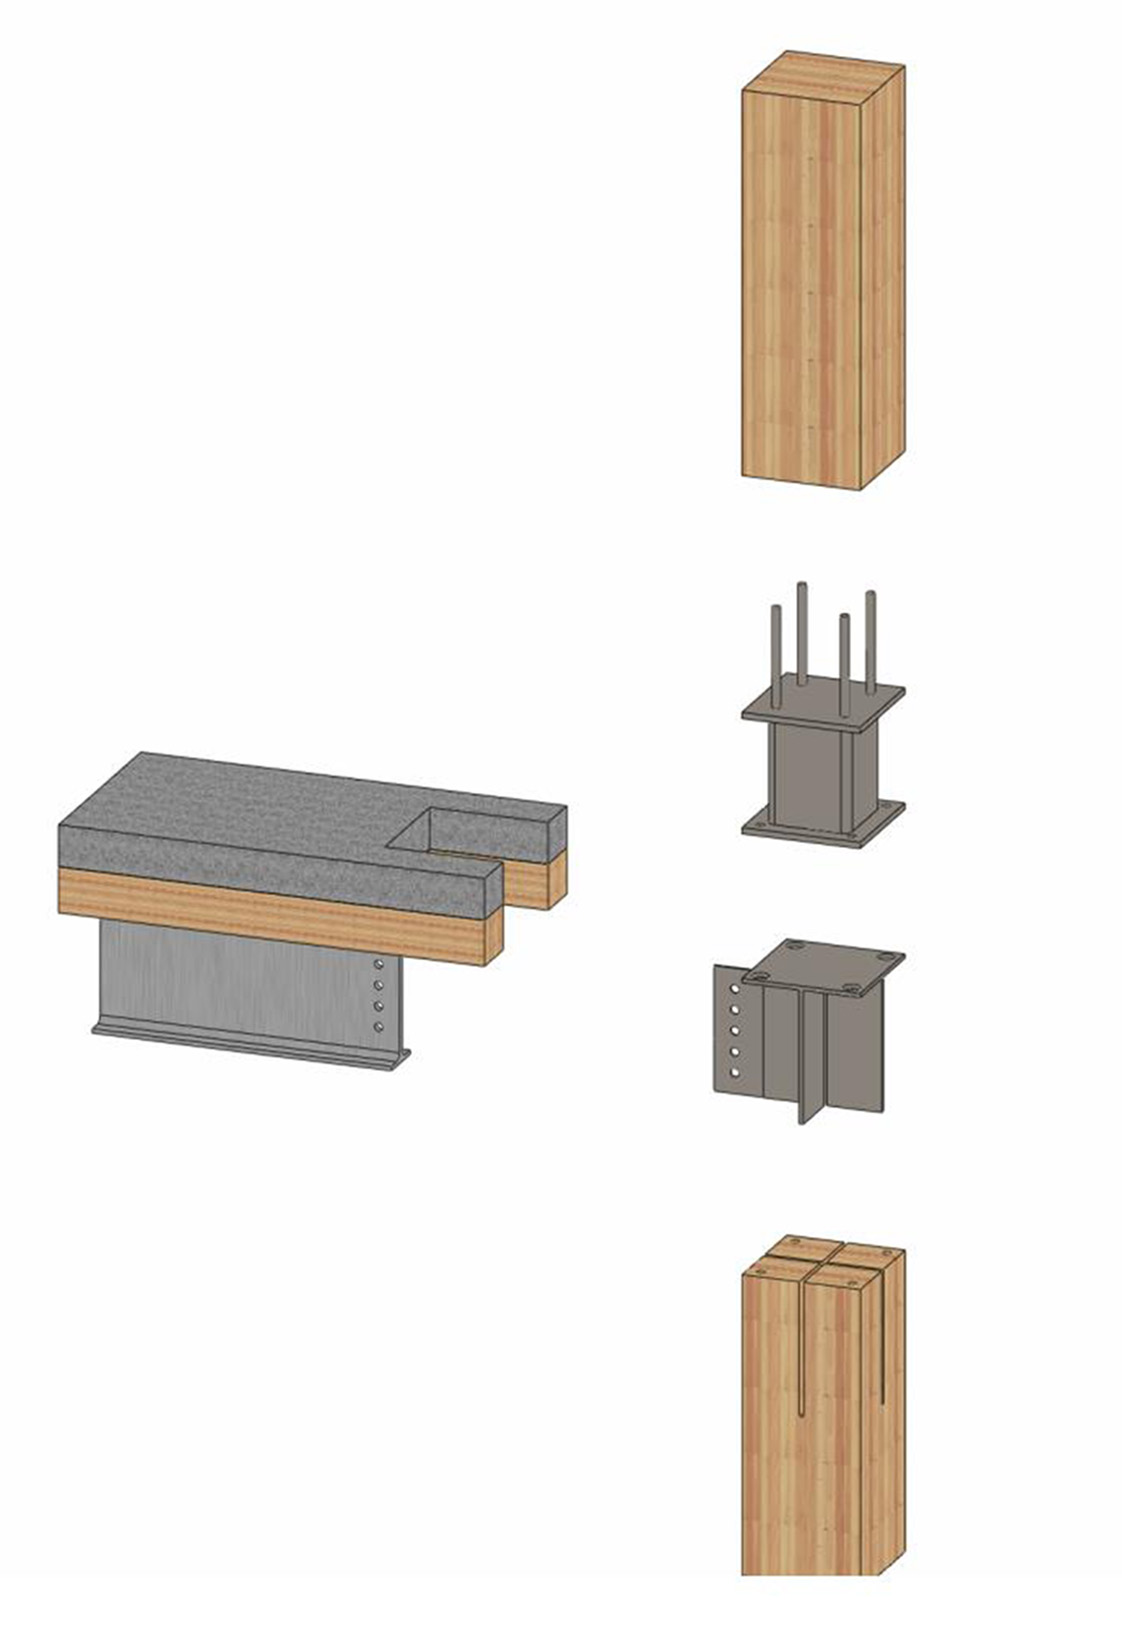 Cross-Laminated Timber SOLIDWORKS Model Deconstructed by Holmes Structures